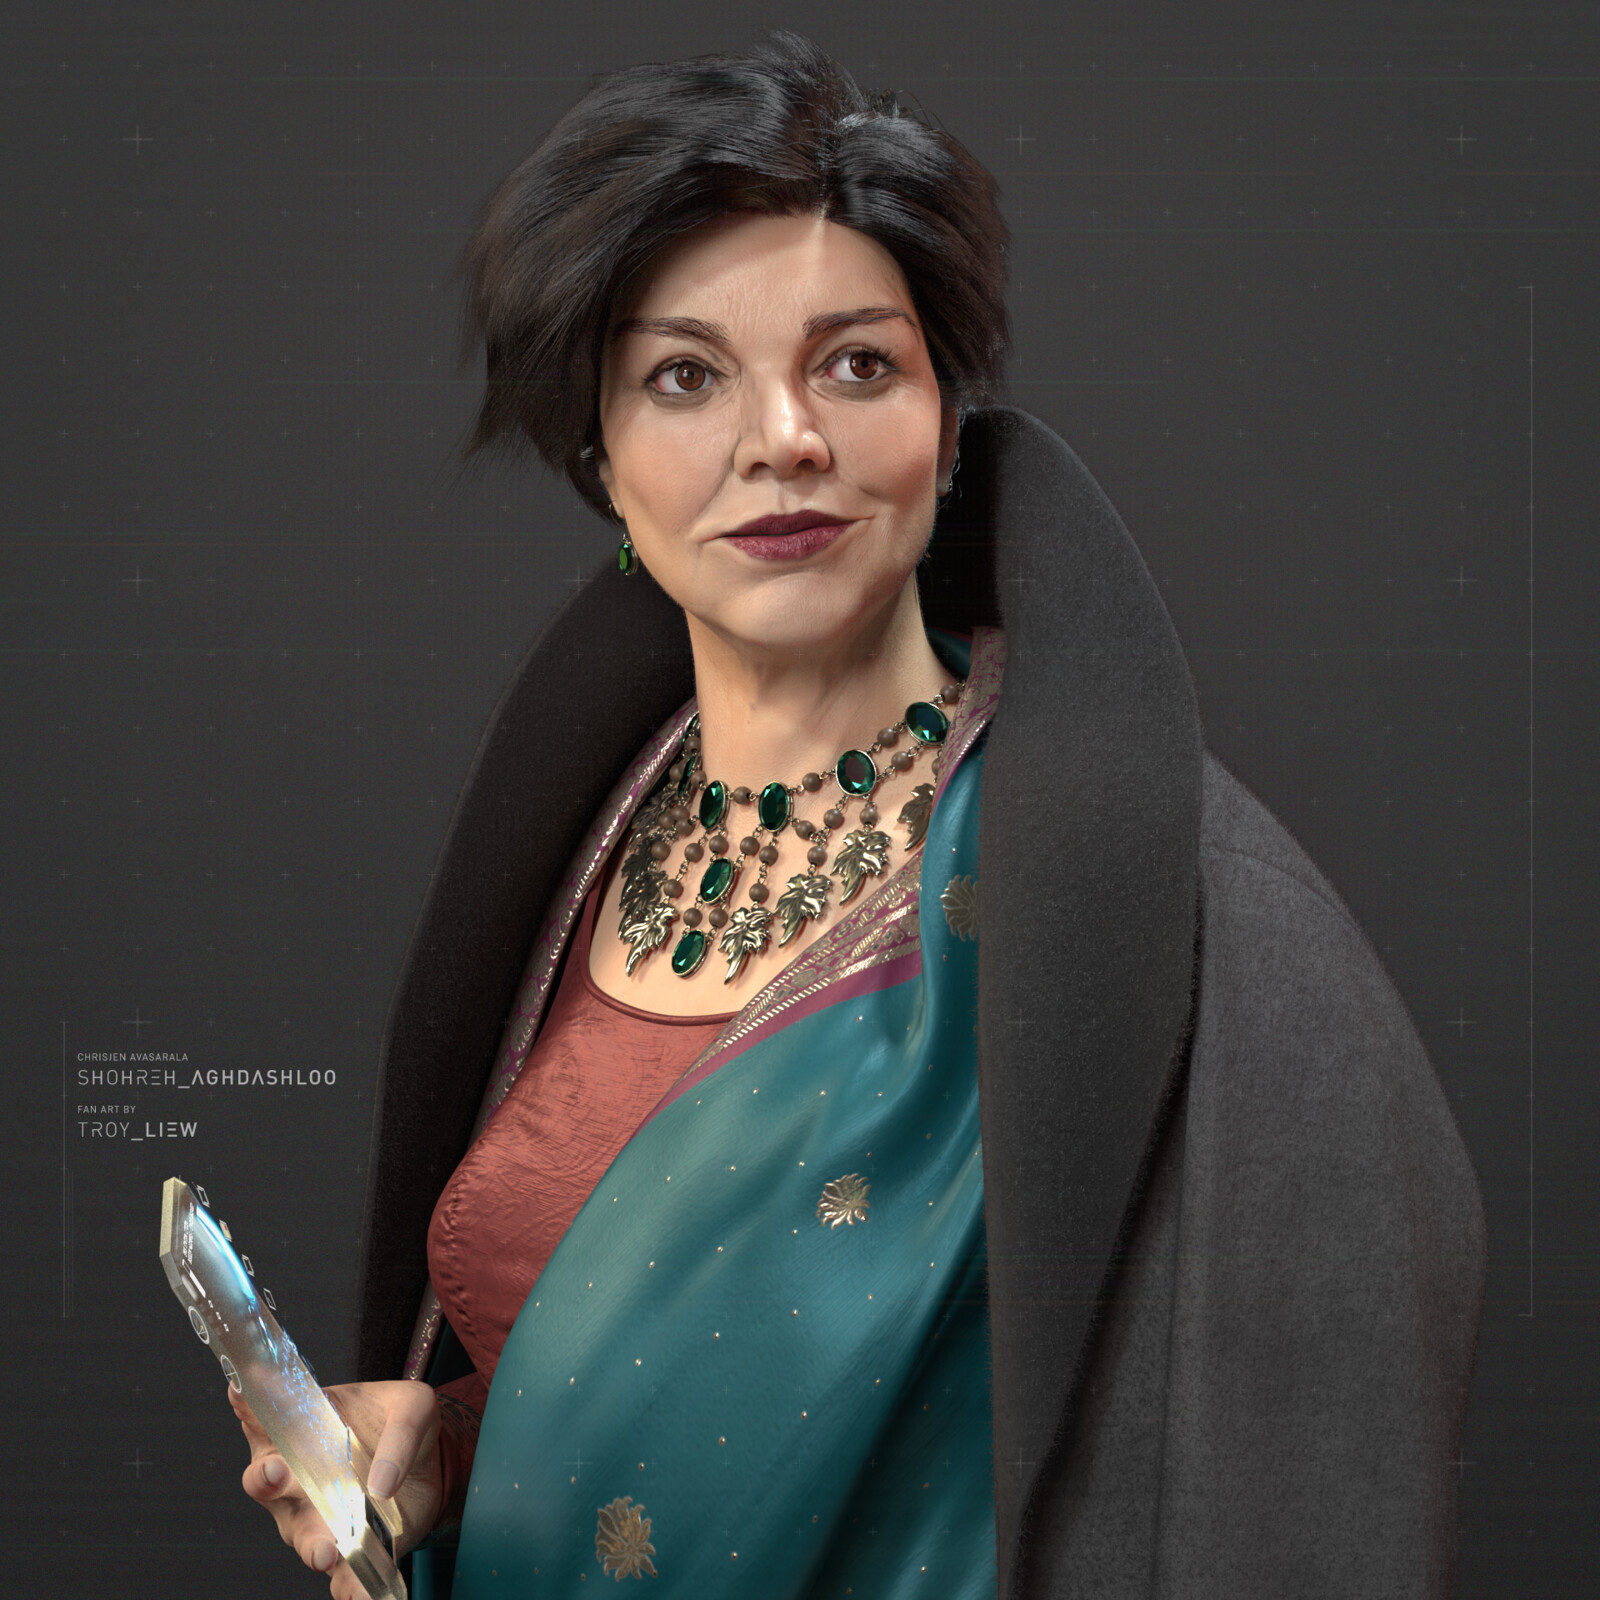 Shohreh Aghdashloo - The Expanse